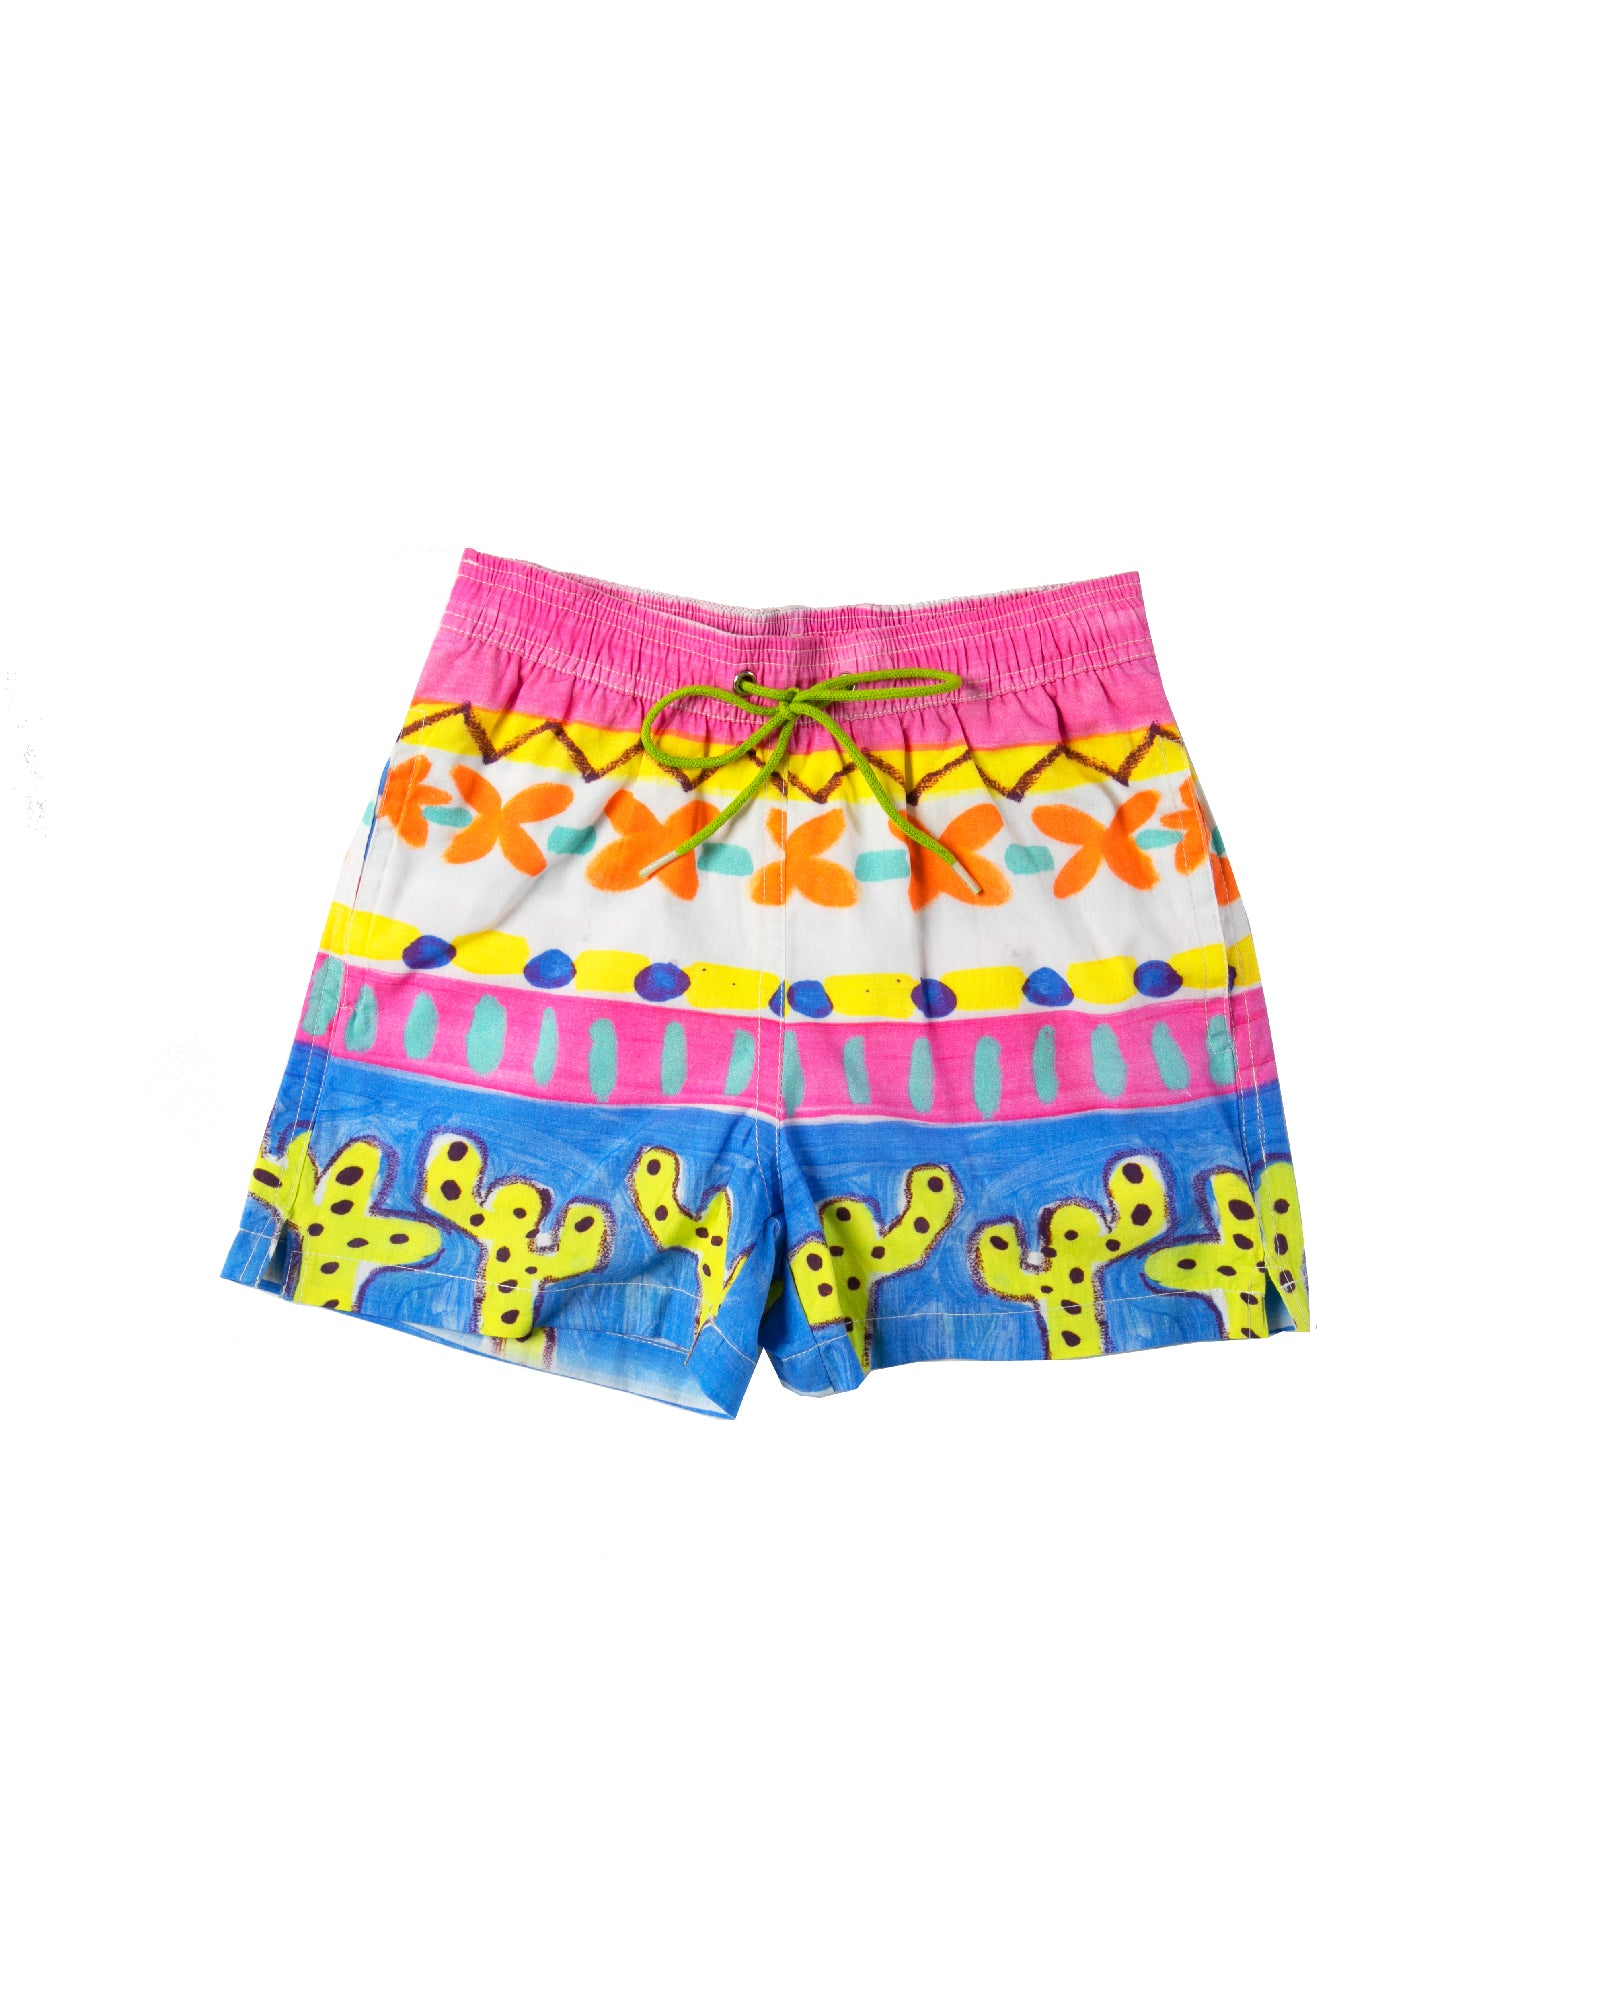 The Desert Cactus Boys Boardshorts by Bonita Bambino - FRONT